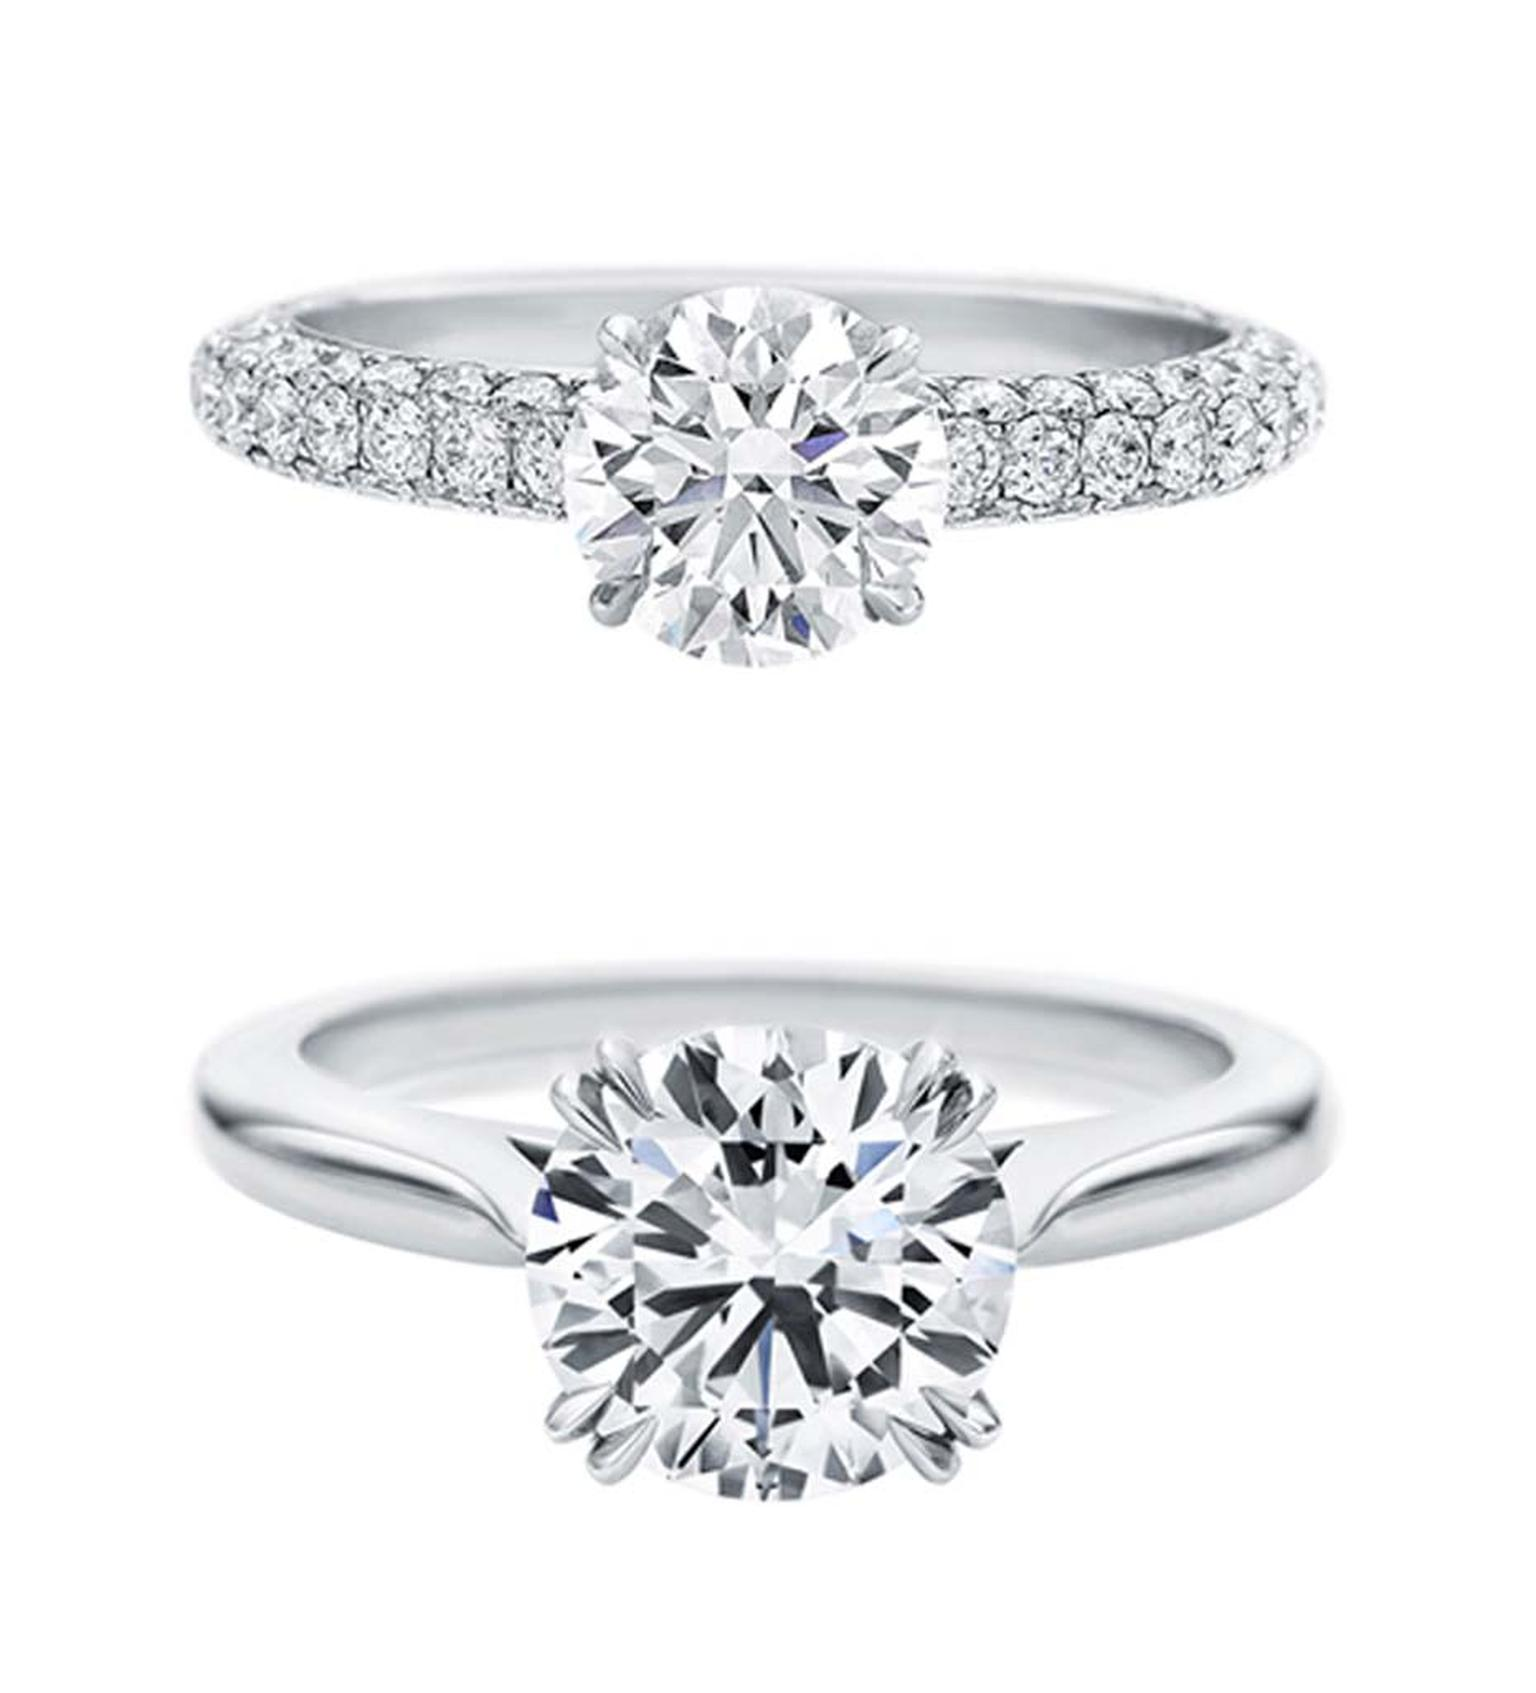 Harry Winston Attraction and Round Brilliant Solitaire diamond engagement rings